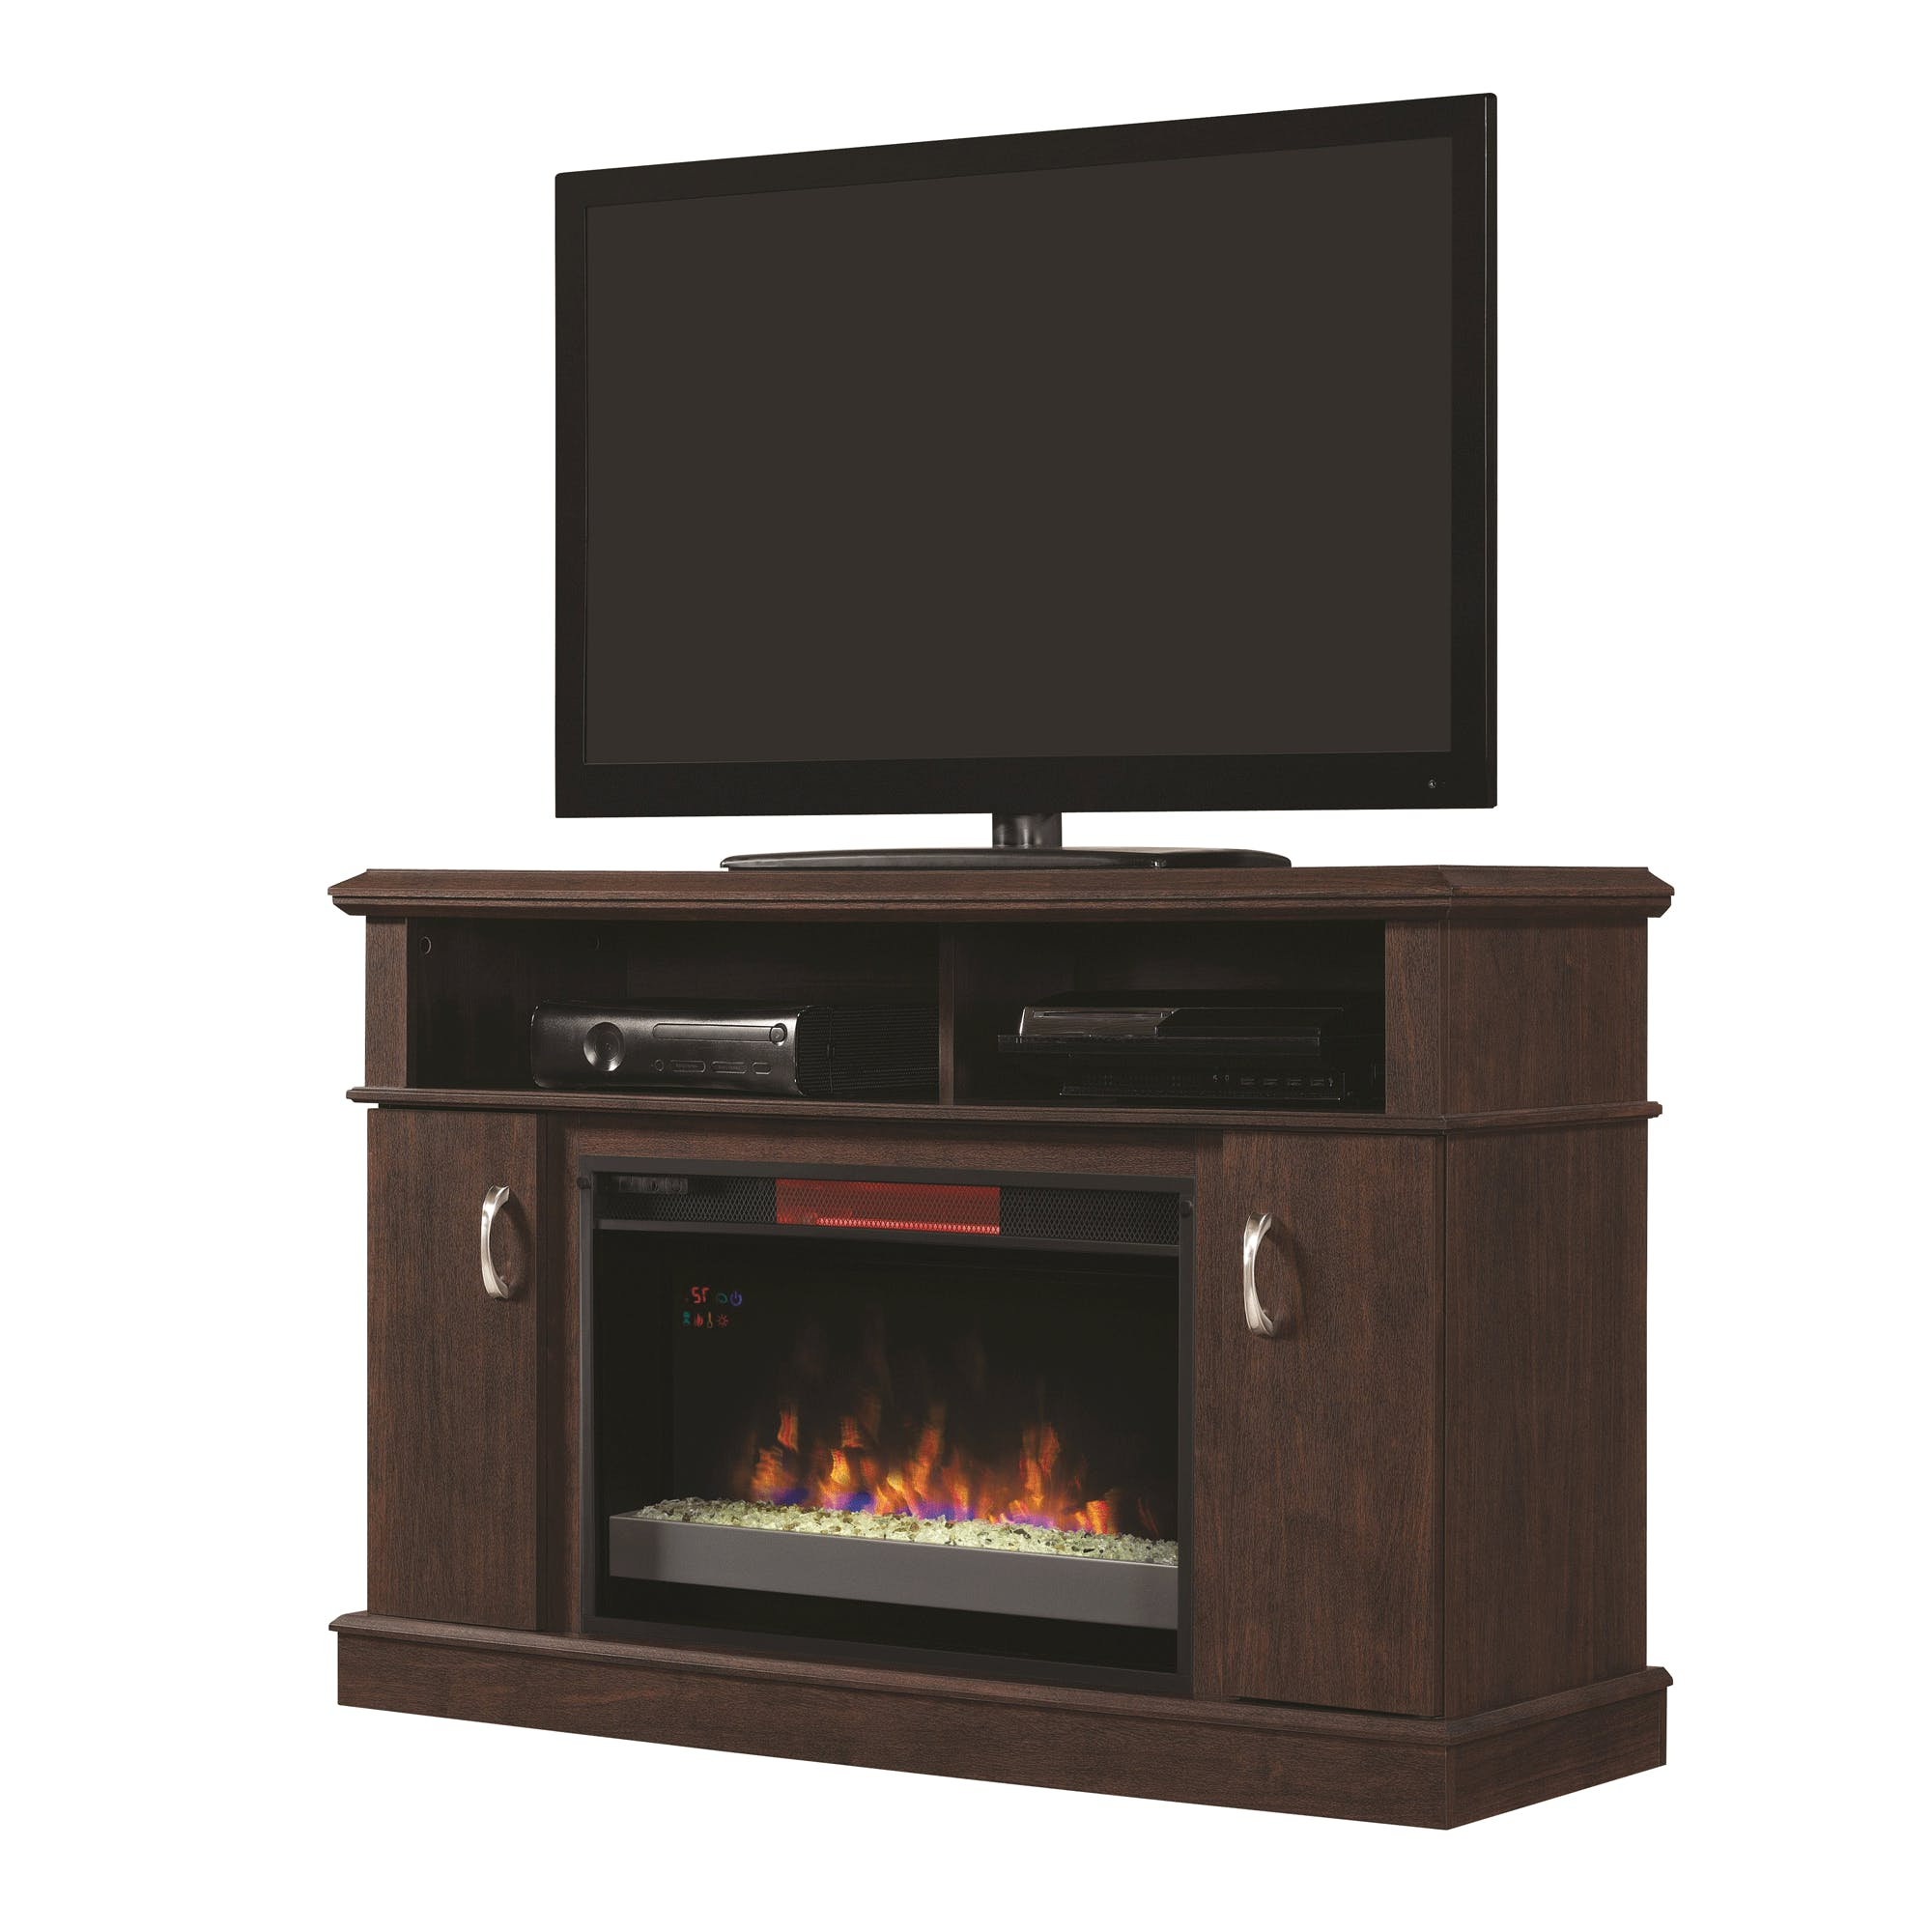 """Widely Used Dwell Tv Stands Pertaining To Dwell Tv Stand For Tvs Up To 50"""" With 26"""" Infrared Quartz Fireplace (View 7 of 20)"""